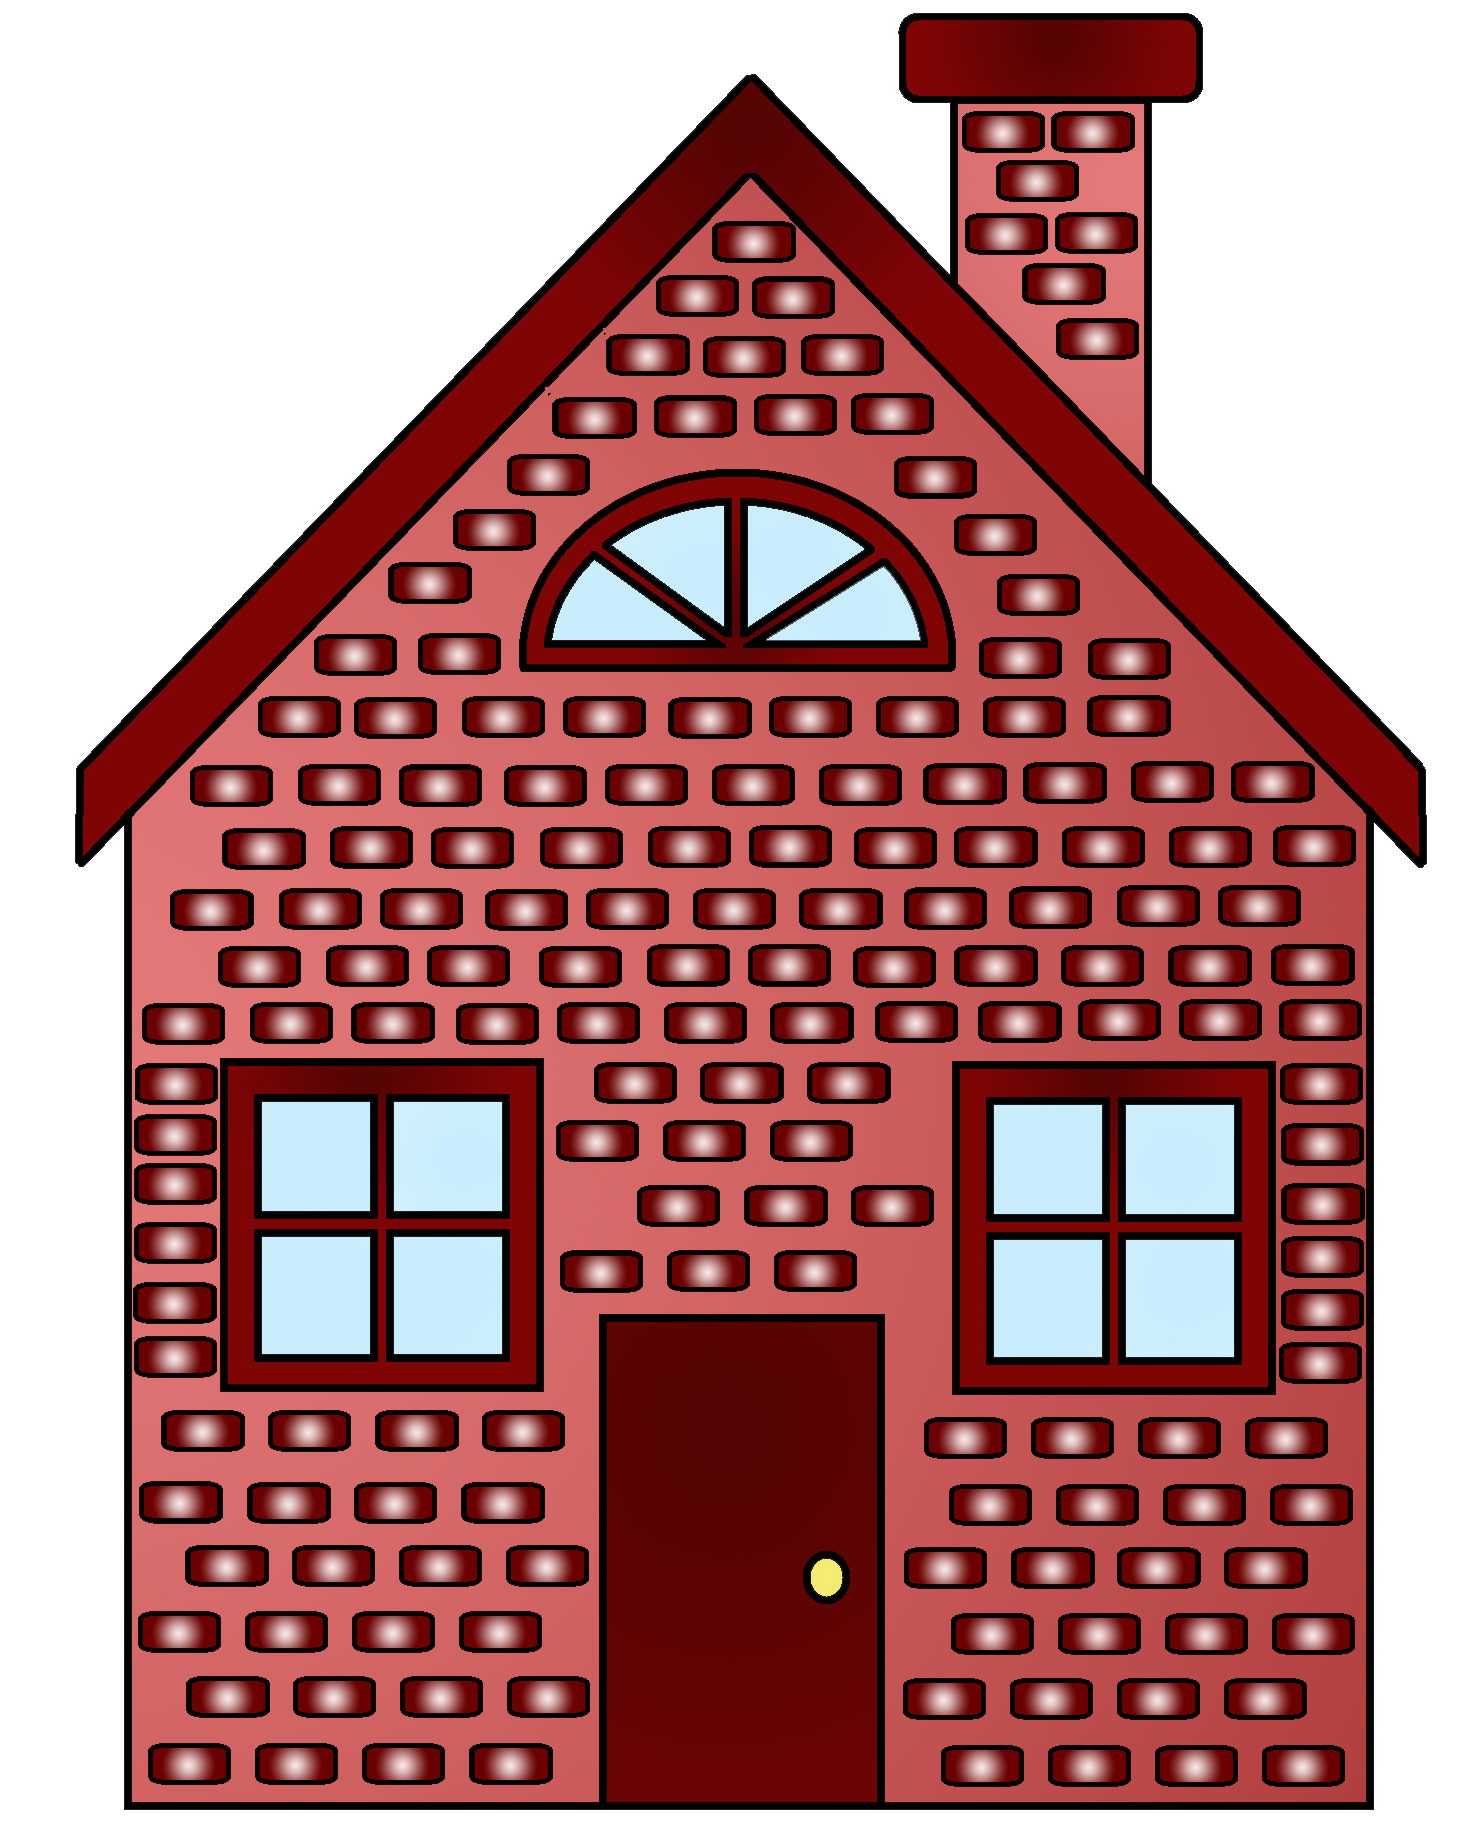 Drawing bricks brick house. Collection of red